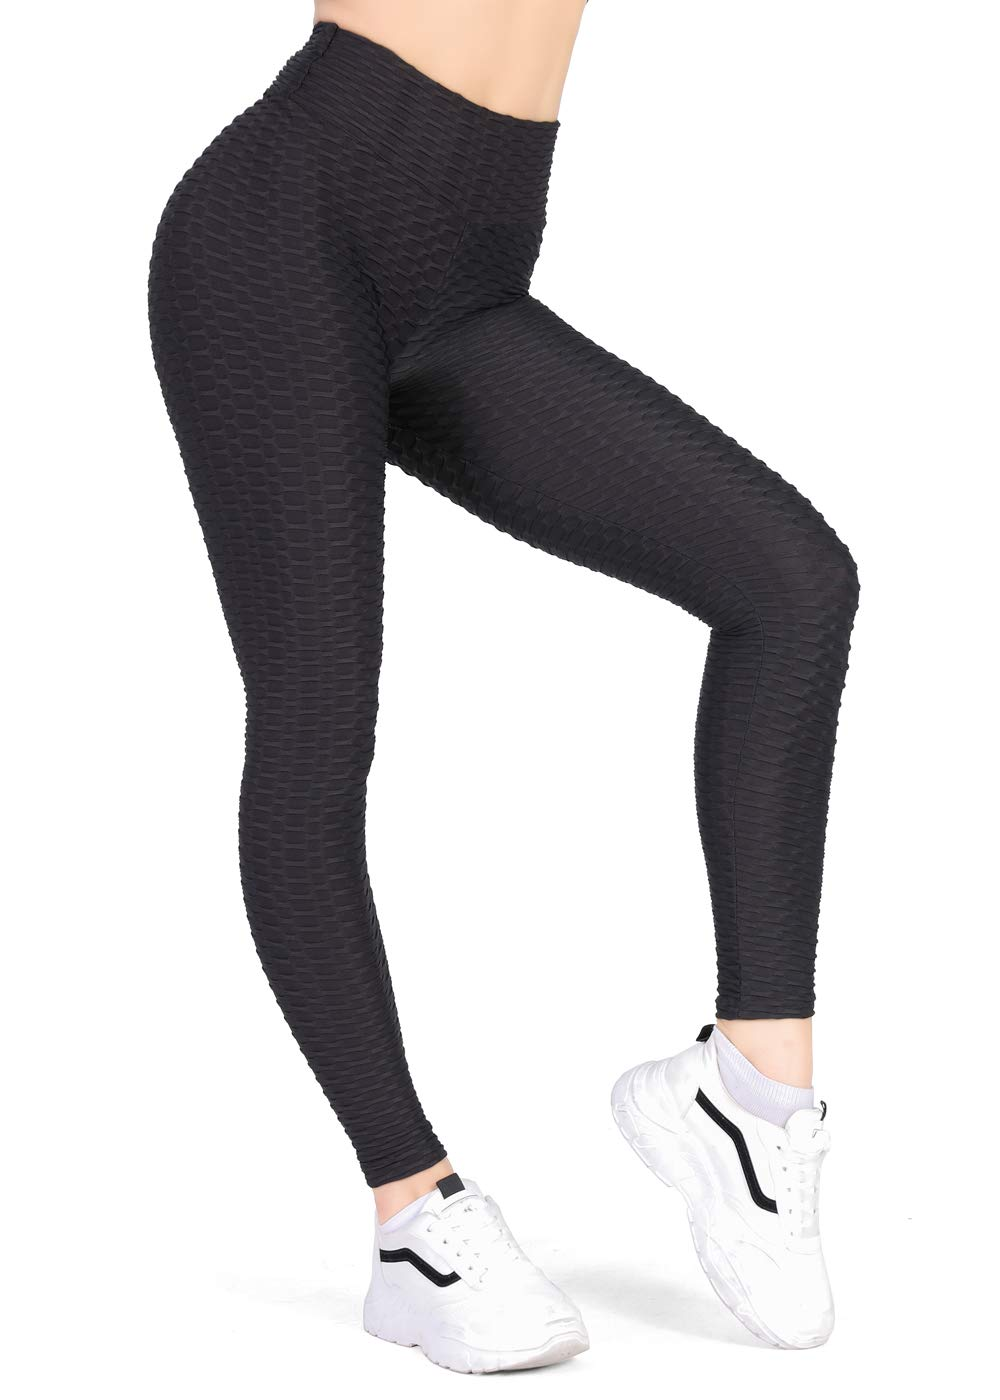 Kamots Beauty Butt Lifting Leggings High Waisted Women Cellulite Stretchy Workout Yoga Pants Black